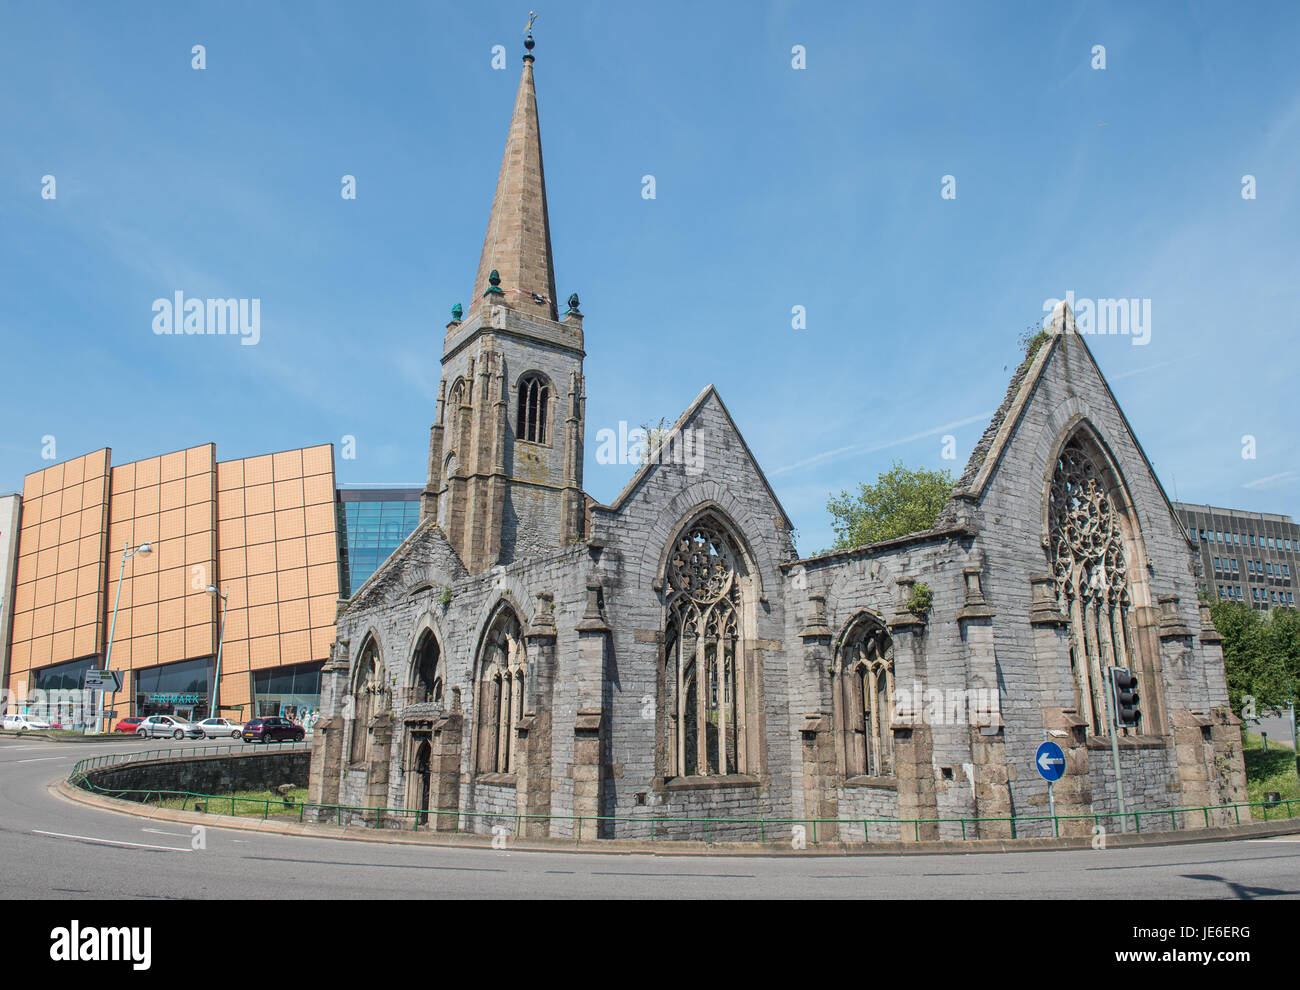 Copyrighted Image by Paul Slater/PSI - Charles Cross Church, Plymouth, UK. - Stock Image